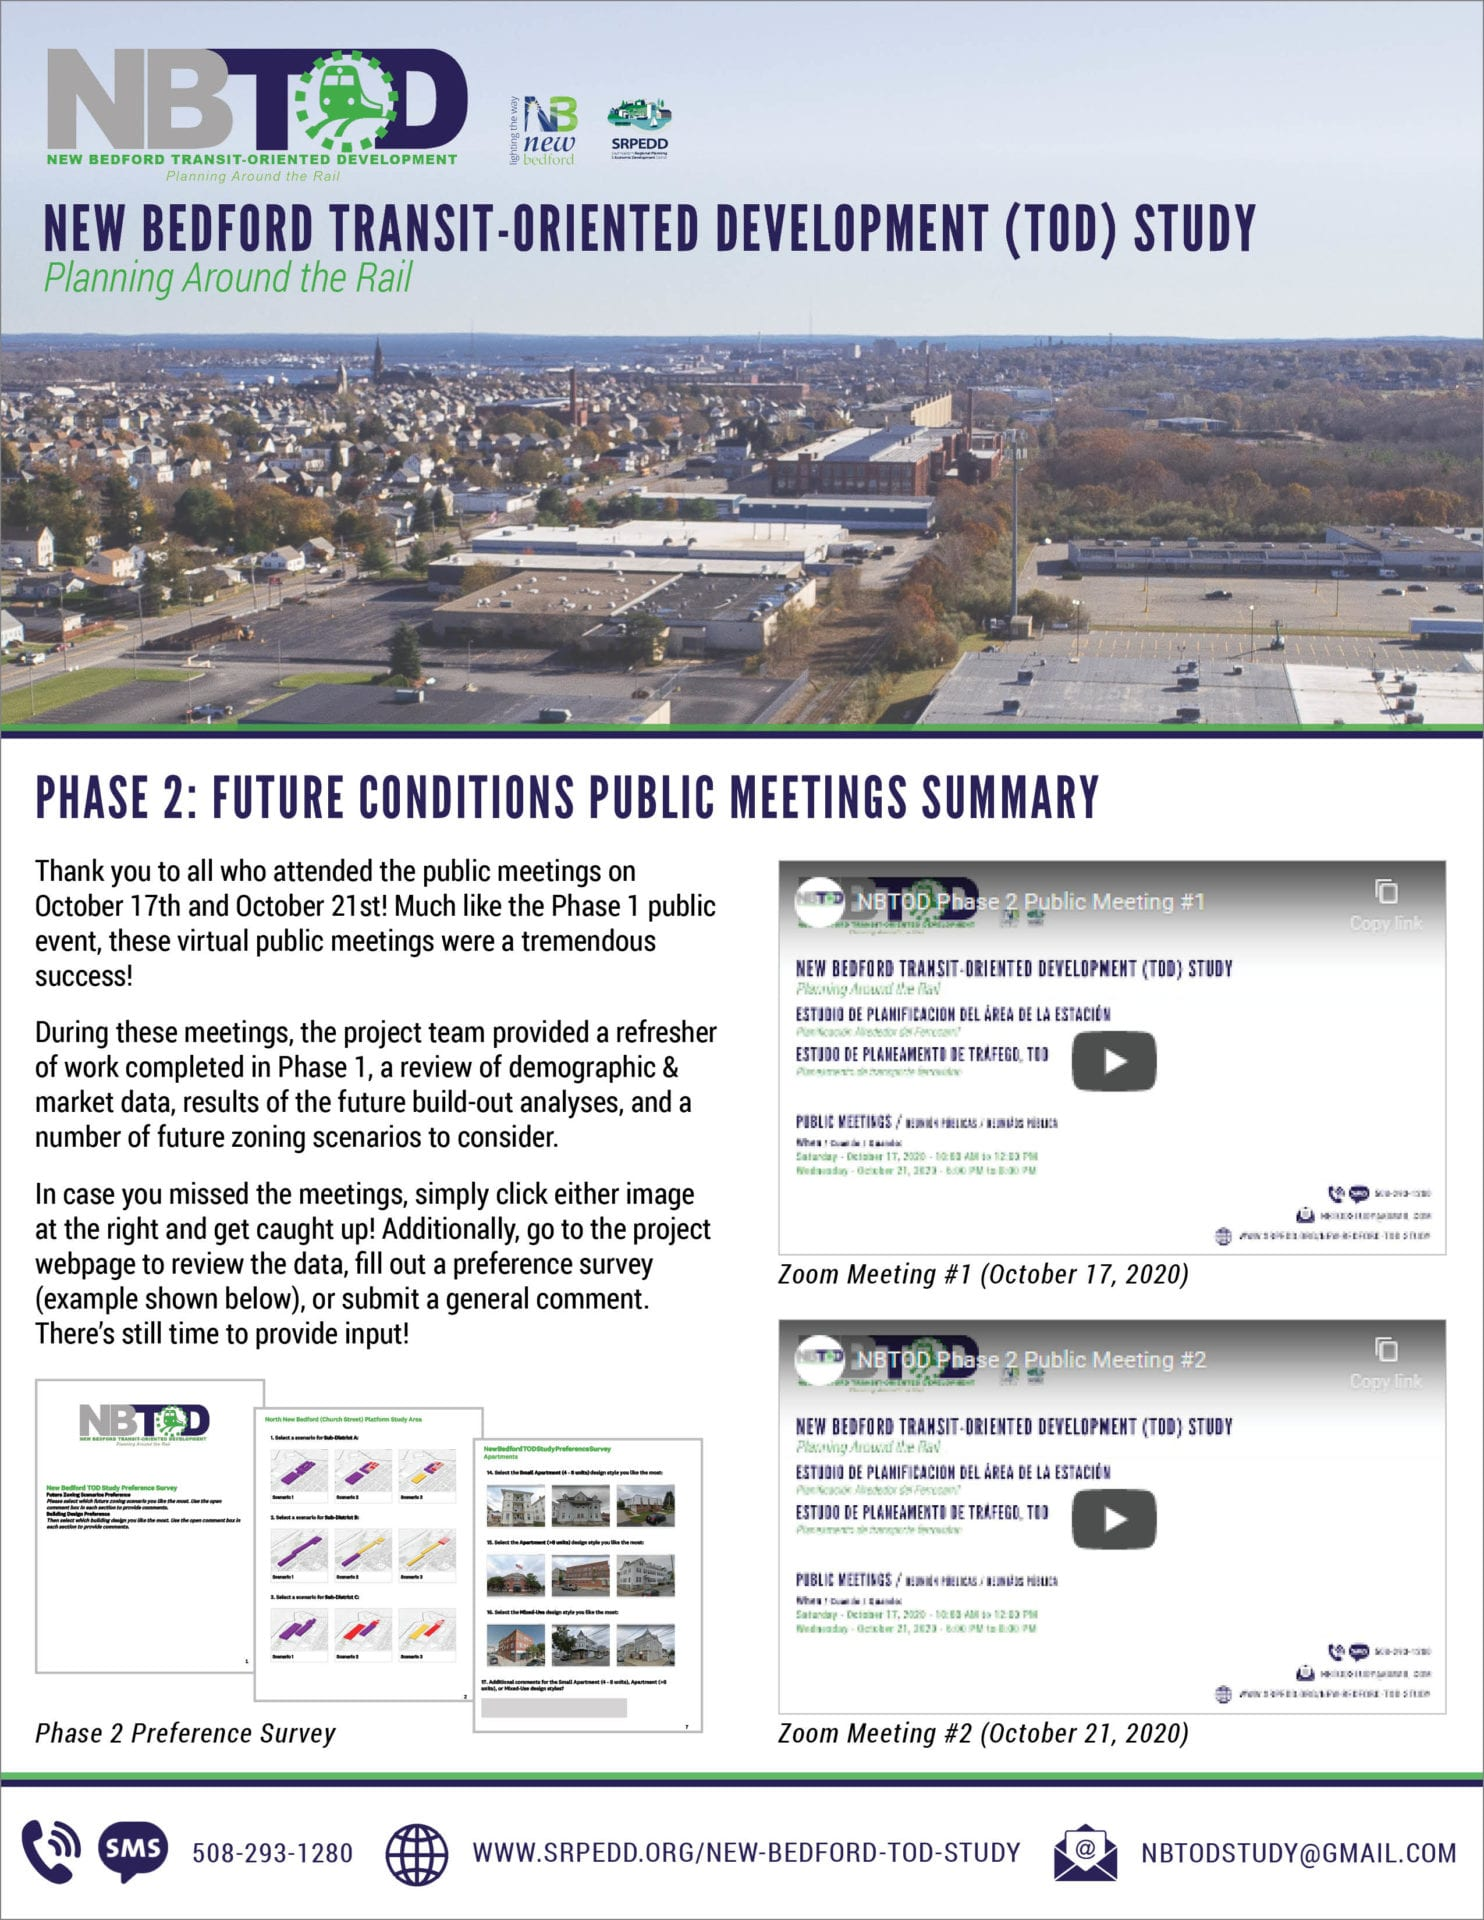 A summary document of the New Bedfort TOD Study Phase 2A public meetings held in October 2020.